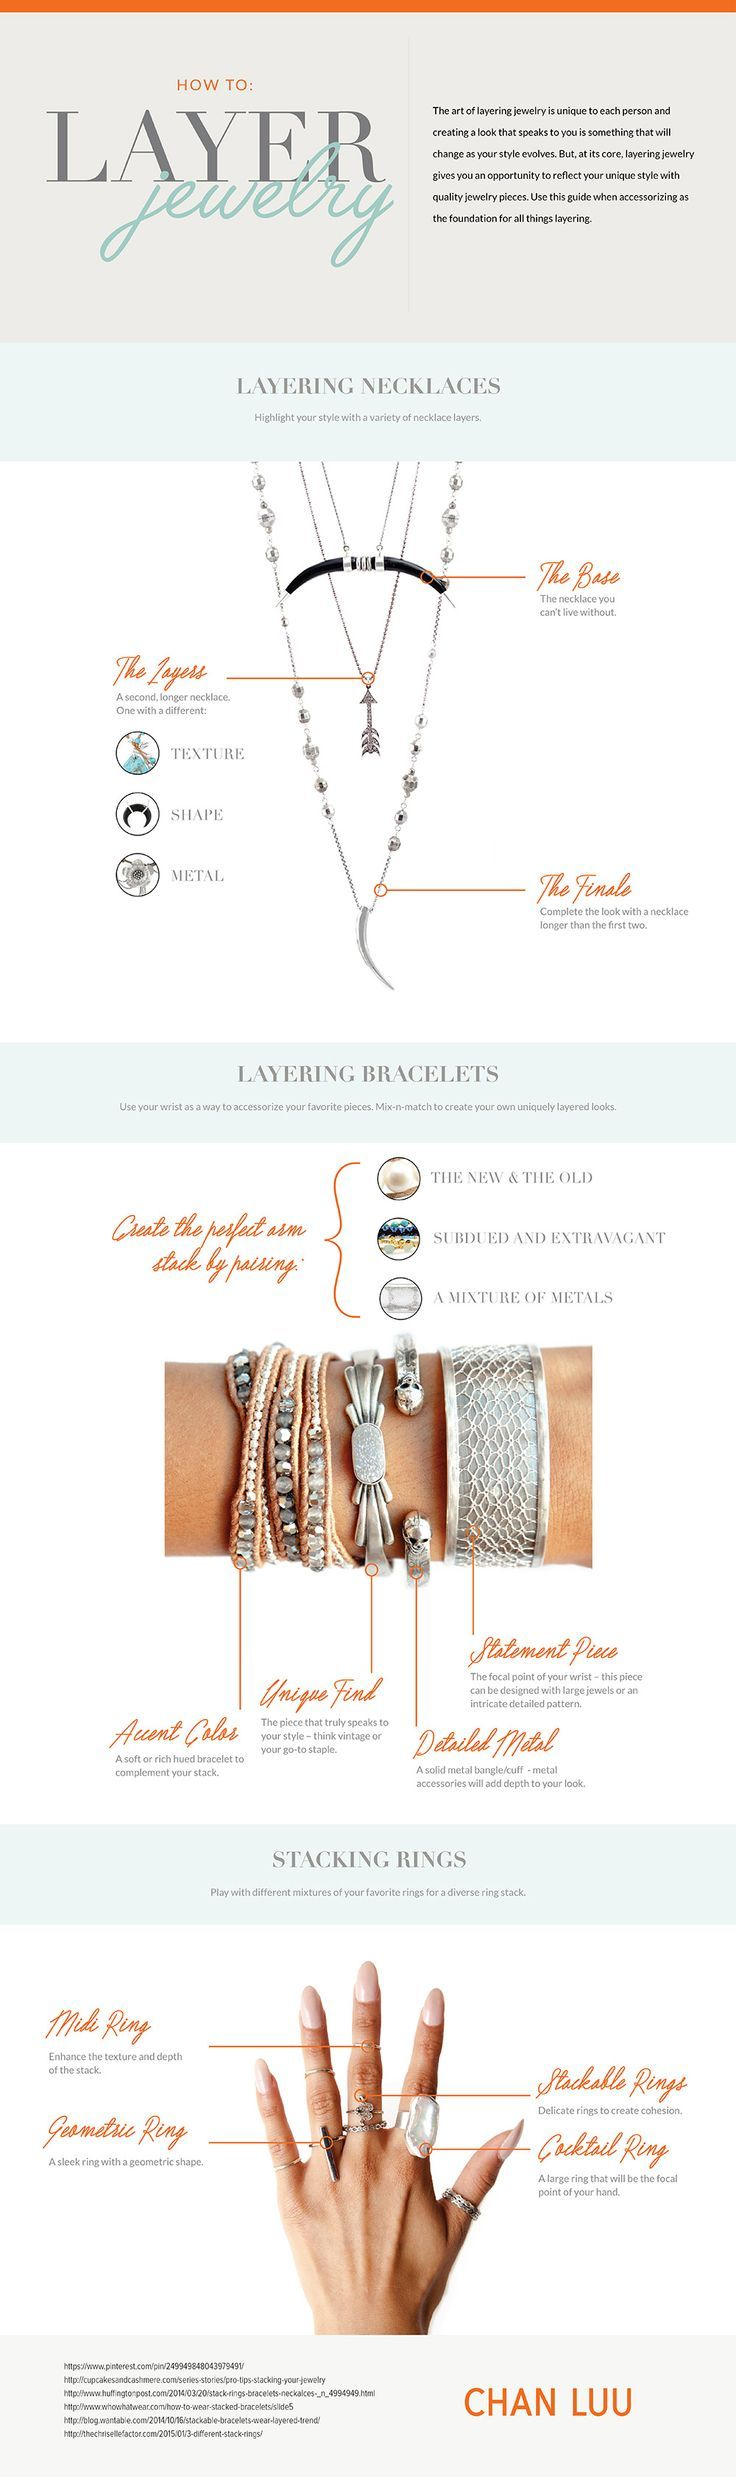 Who knew there were rules to layer jewelry?